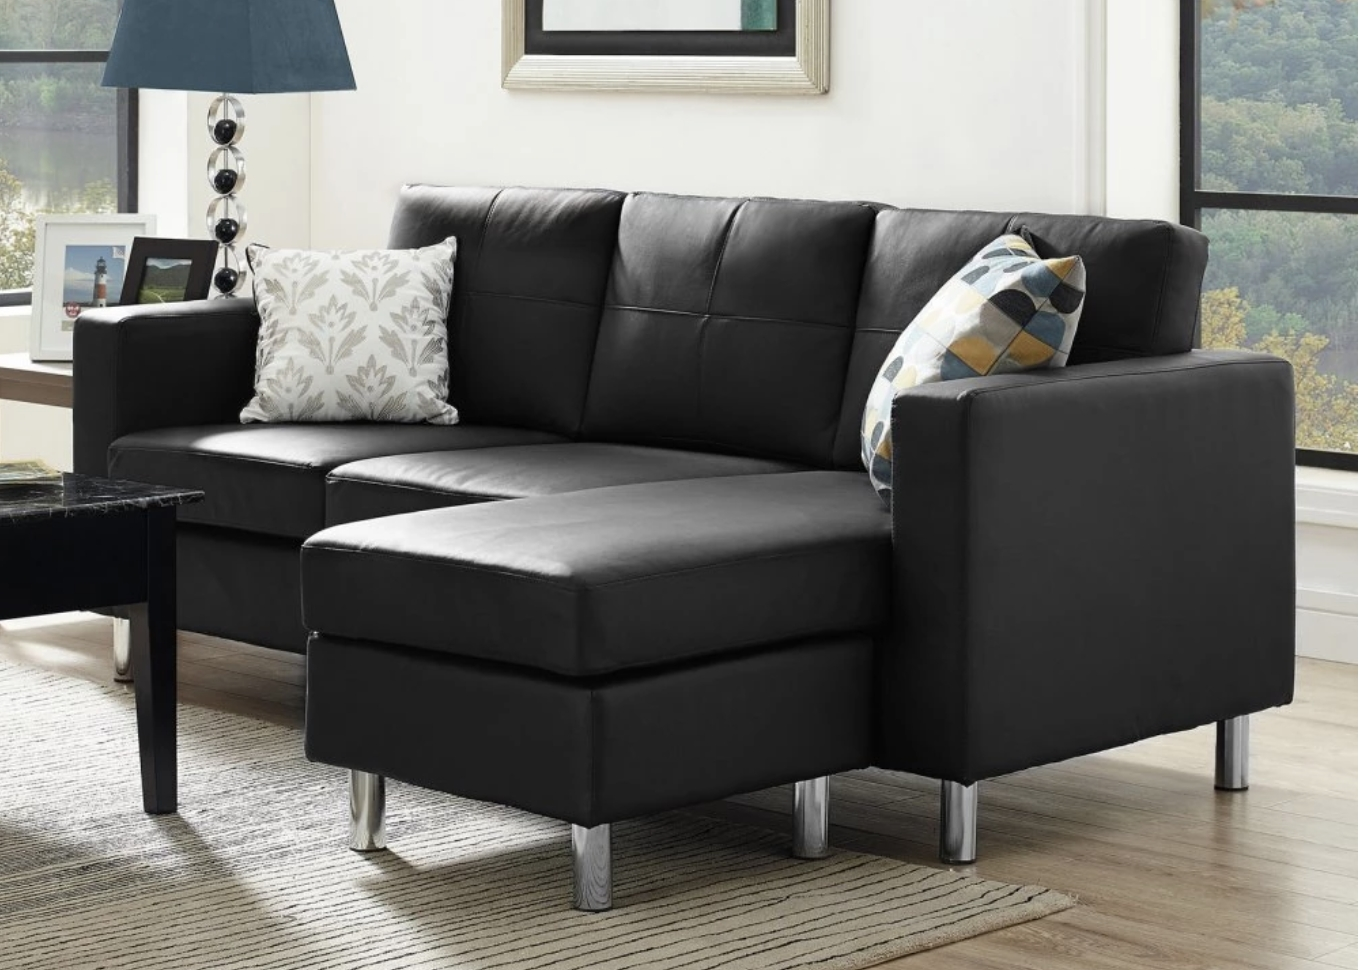 Well Known Sectional Sofas For Small Rooms Within 75 Modern Sectional Sofas For Small Spaces (2018) (View 19 of 20)